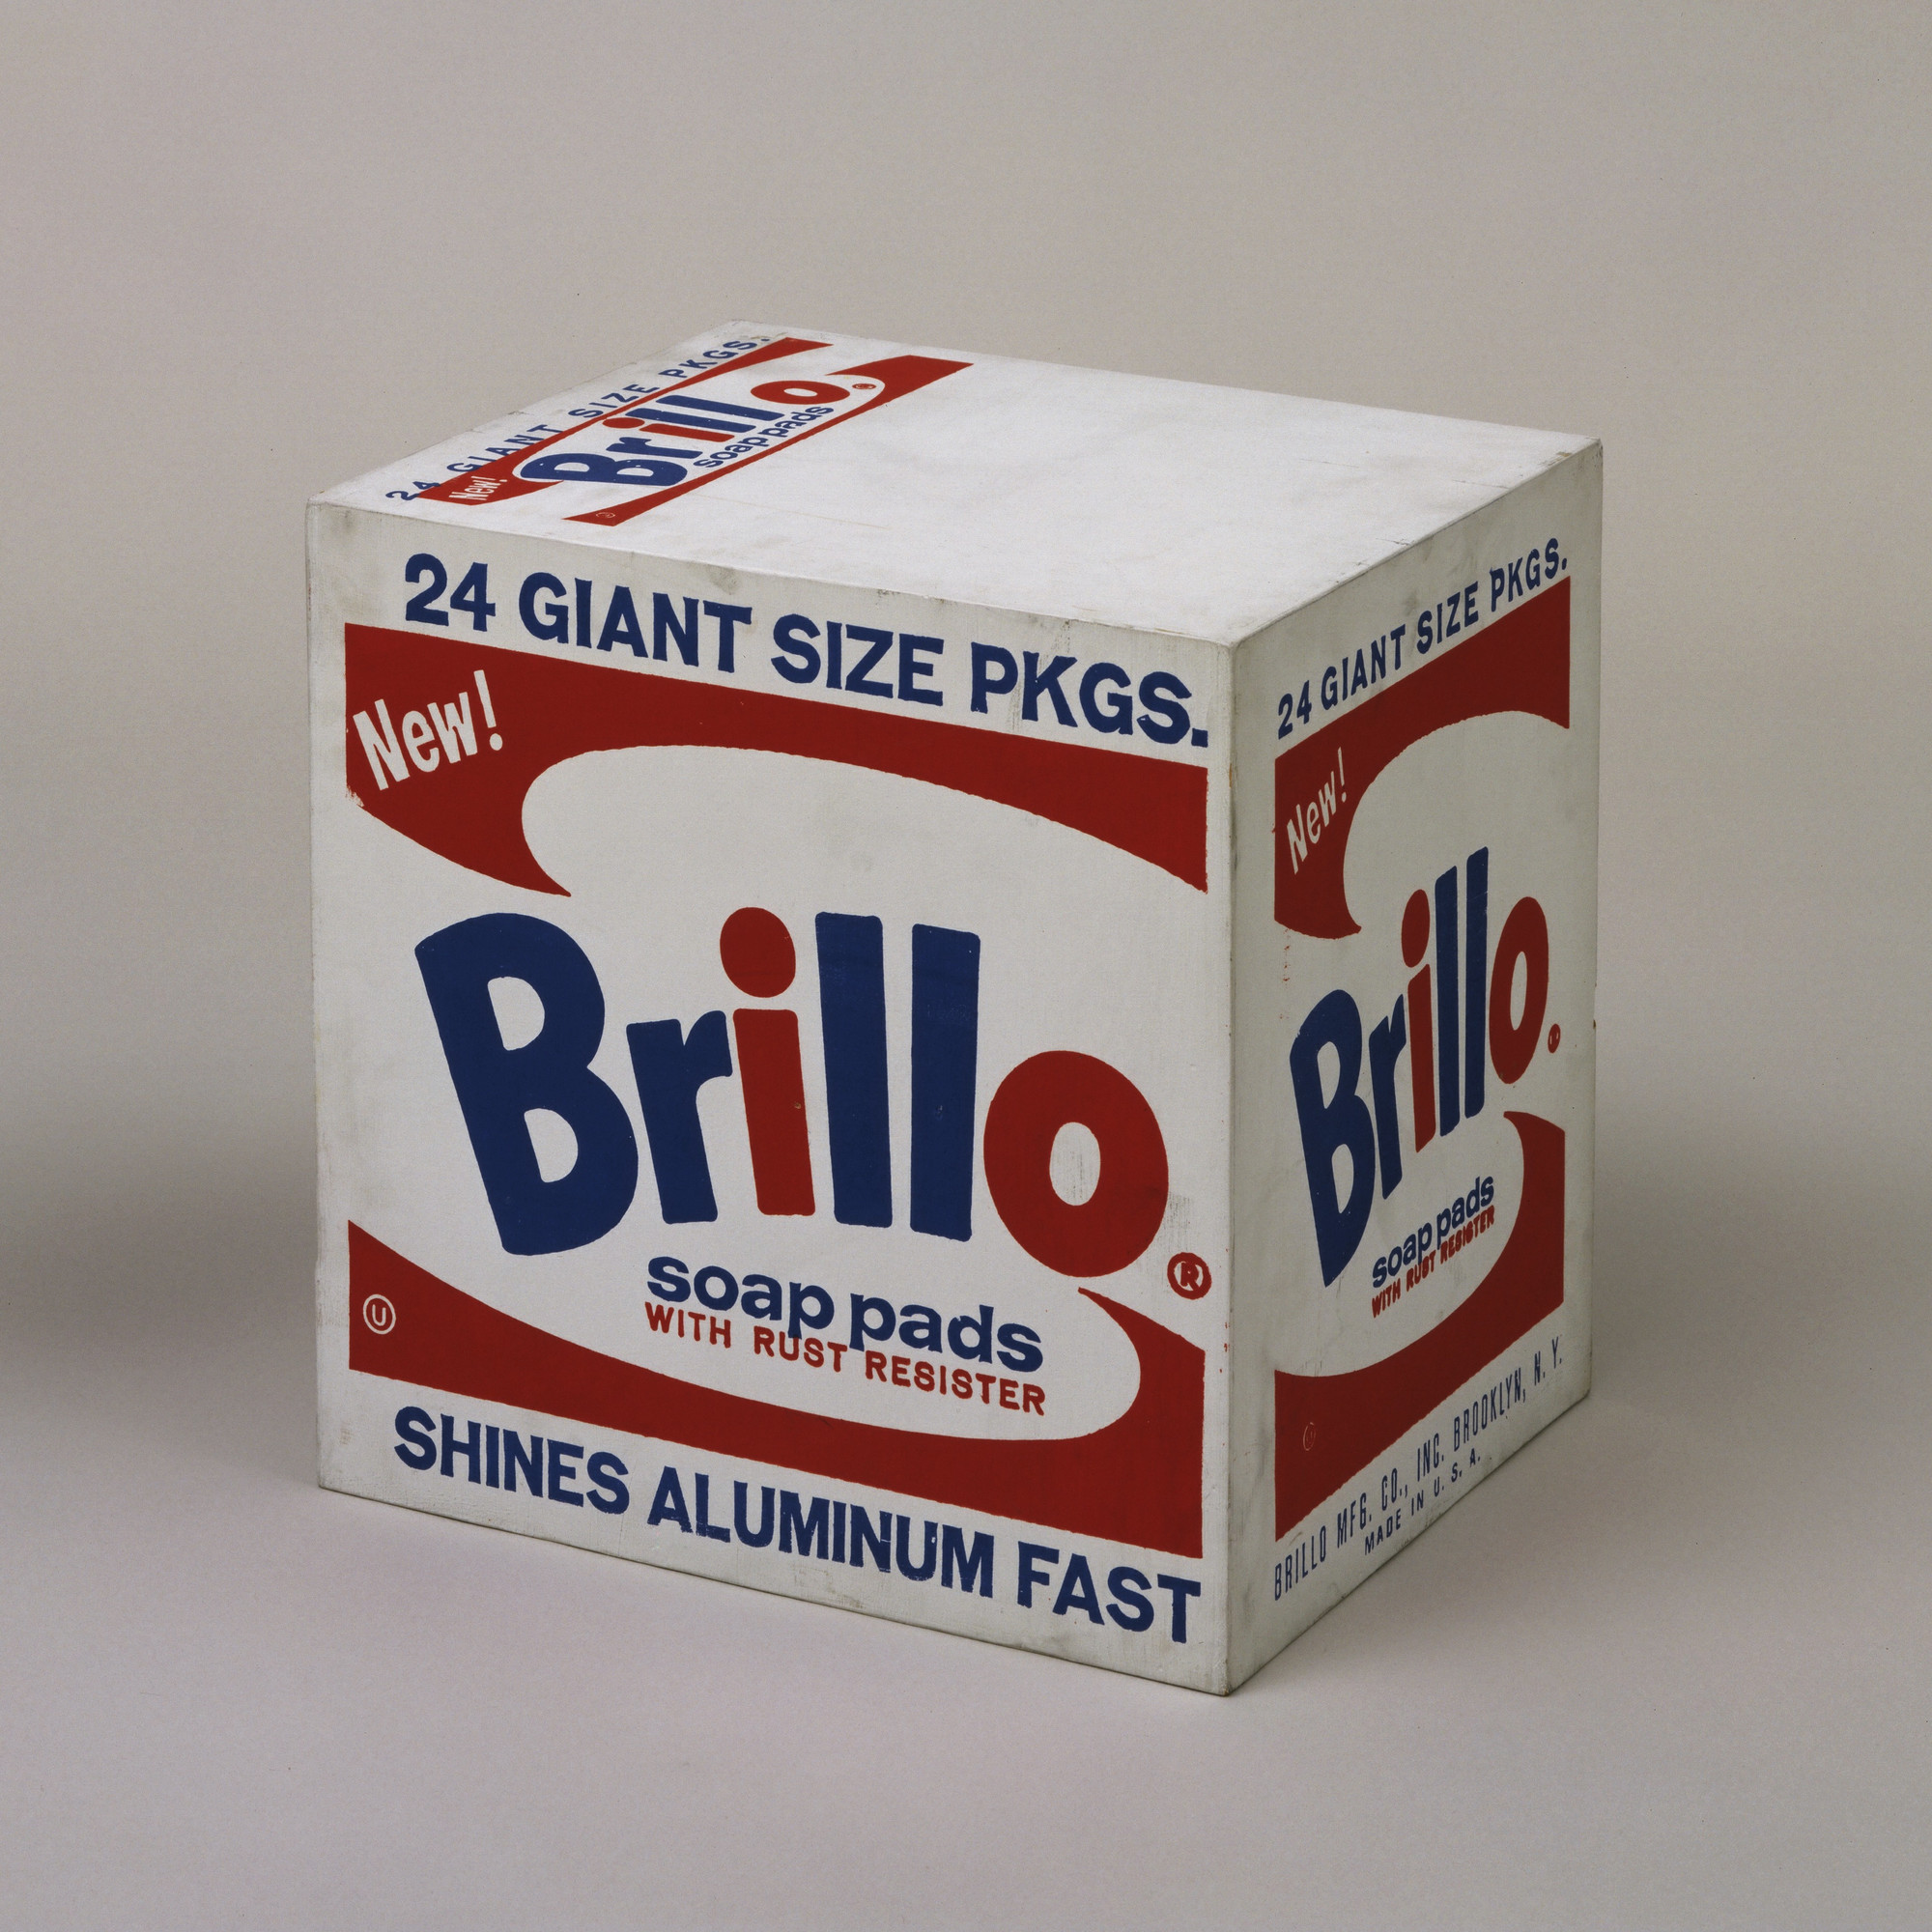 Andy Warhol. Brillo Box (Soap Pads). 1964